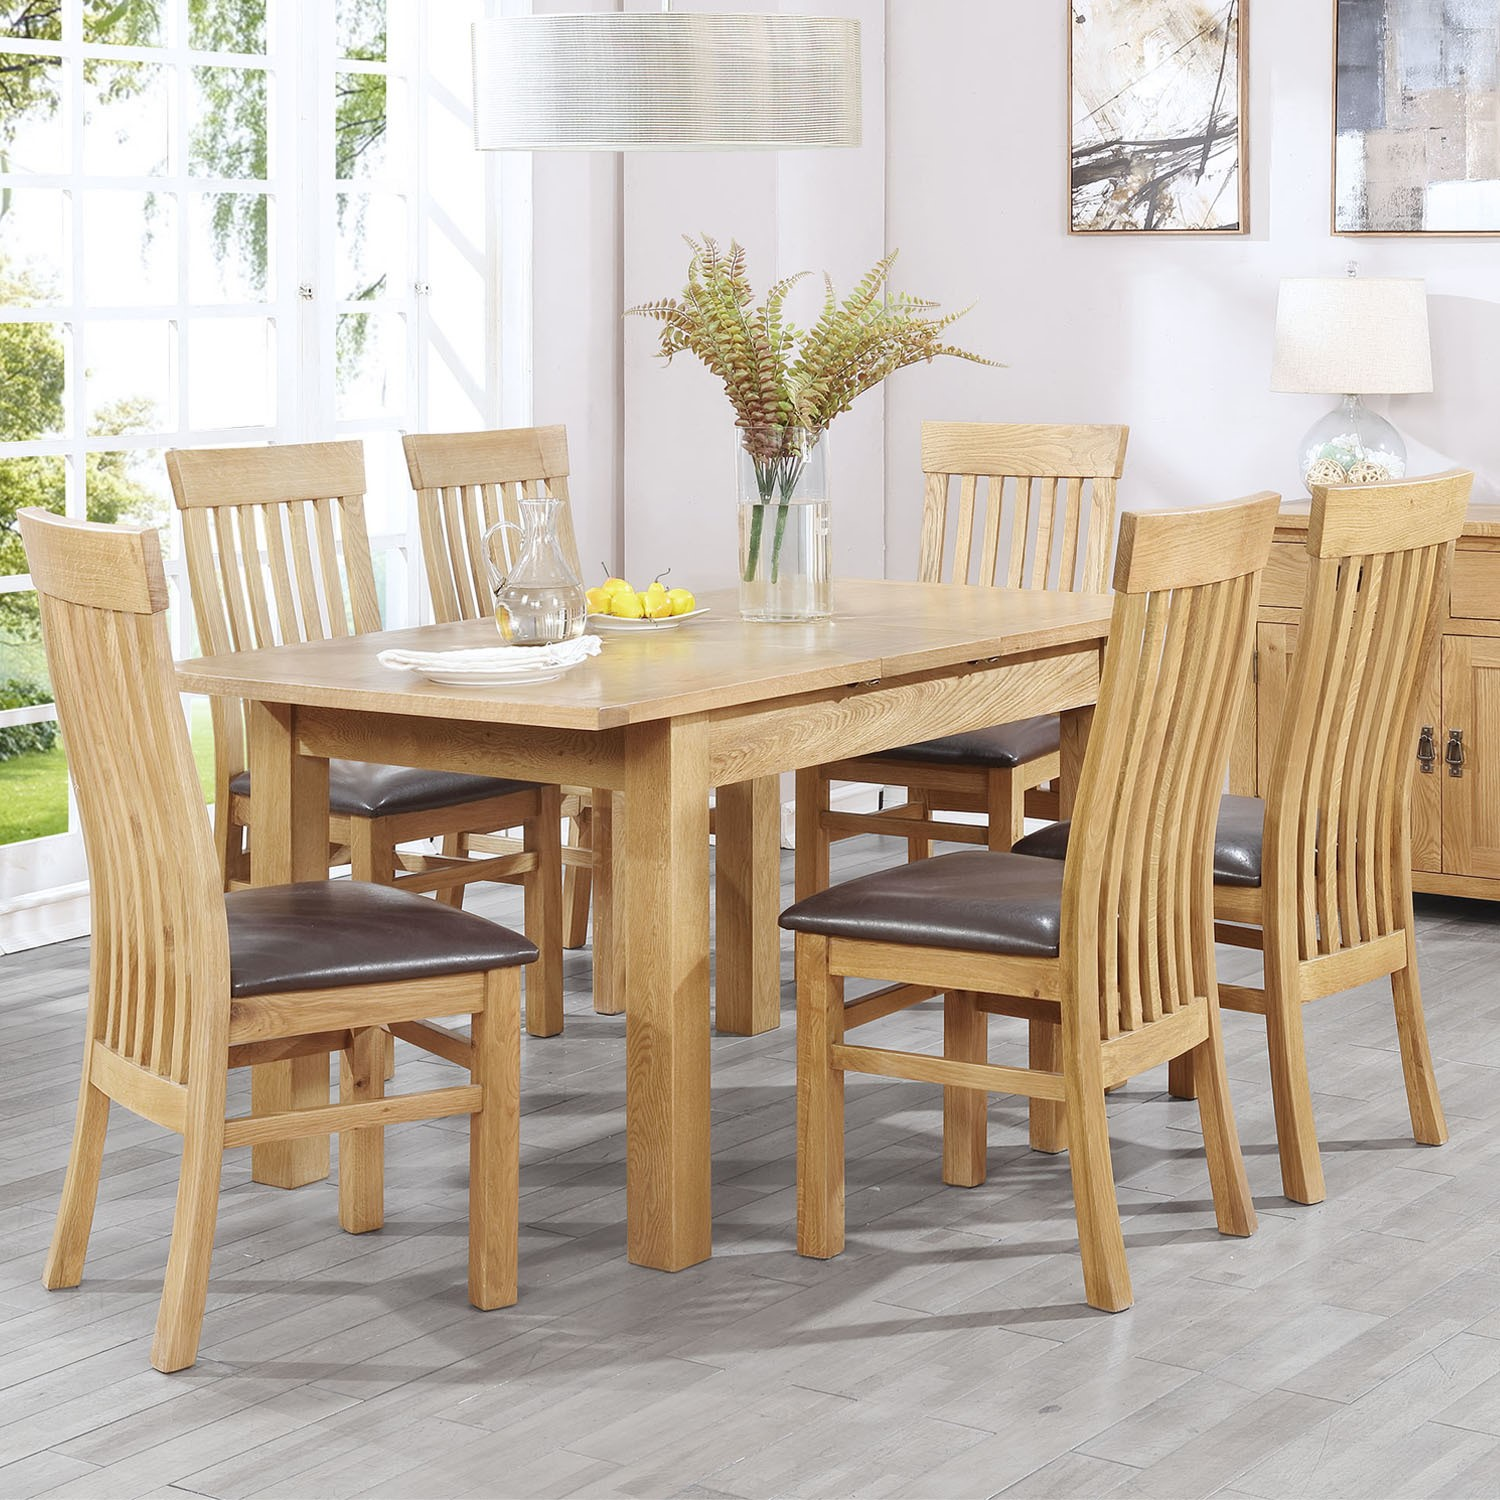 Dining Room Furniture Rustic Extendable Solid Oak Dining Table And 6 Chairs Rustic Saxon Range